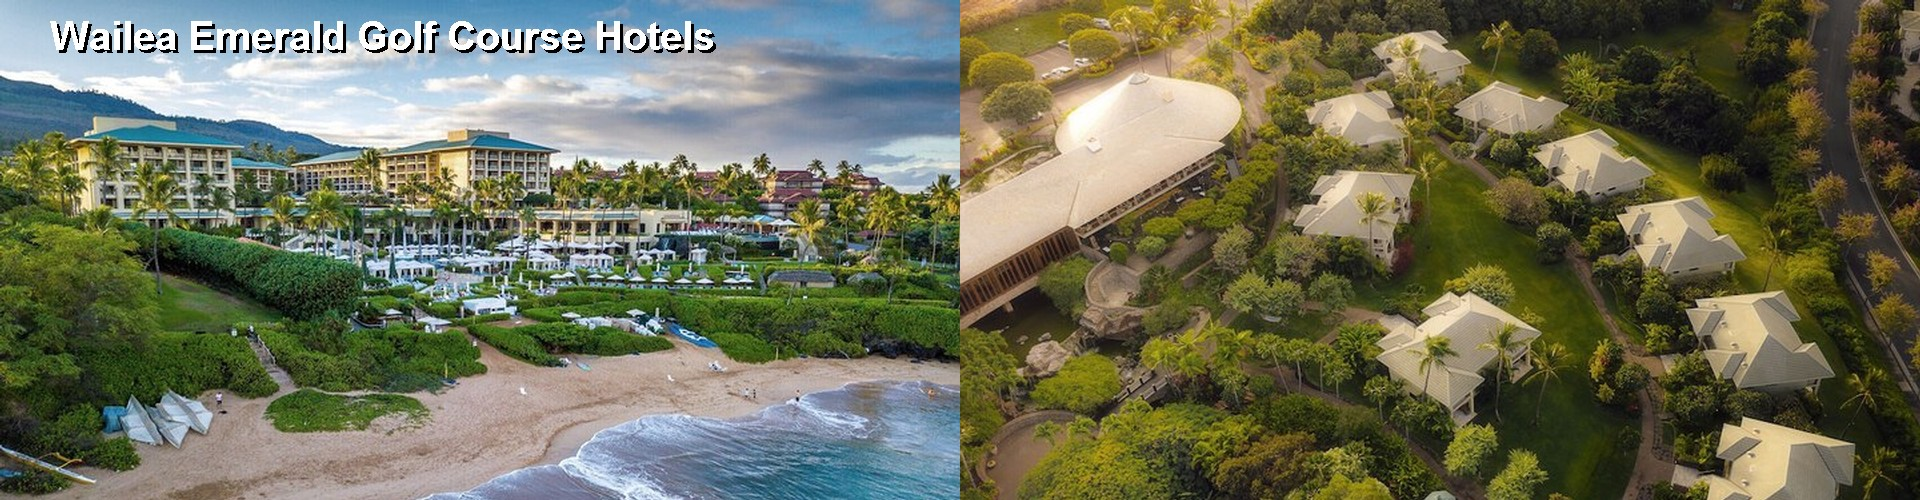 5 Best Hotels near Wailea Emerald Golf Course